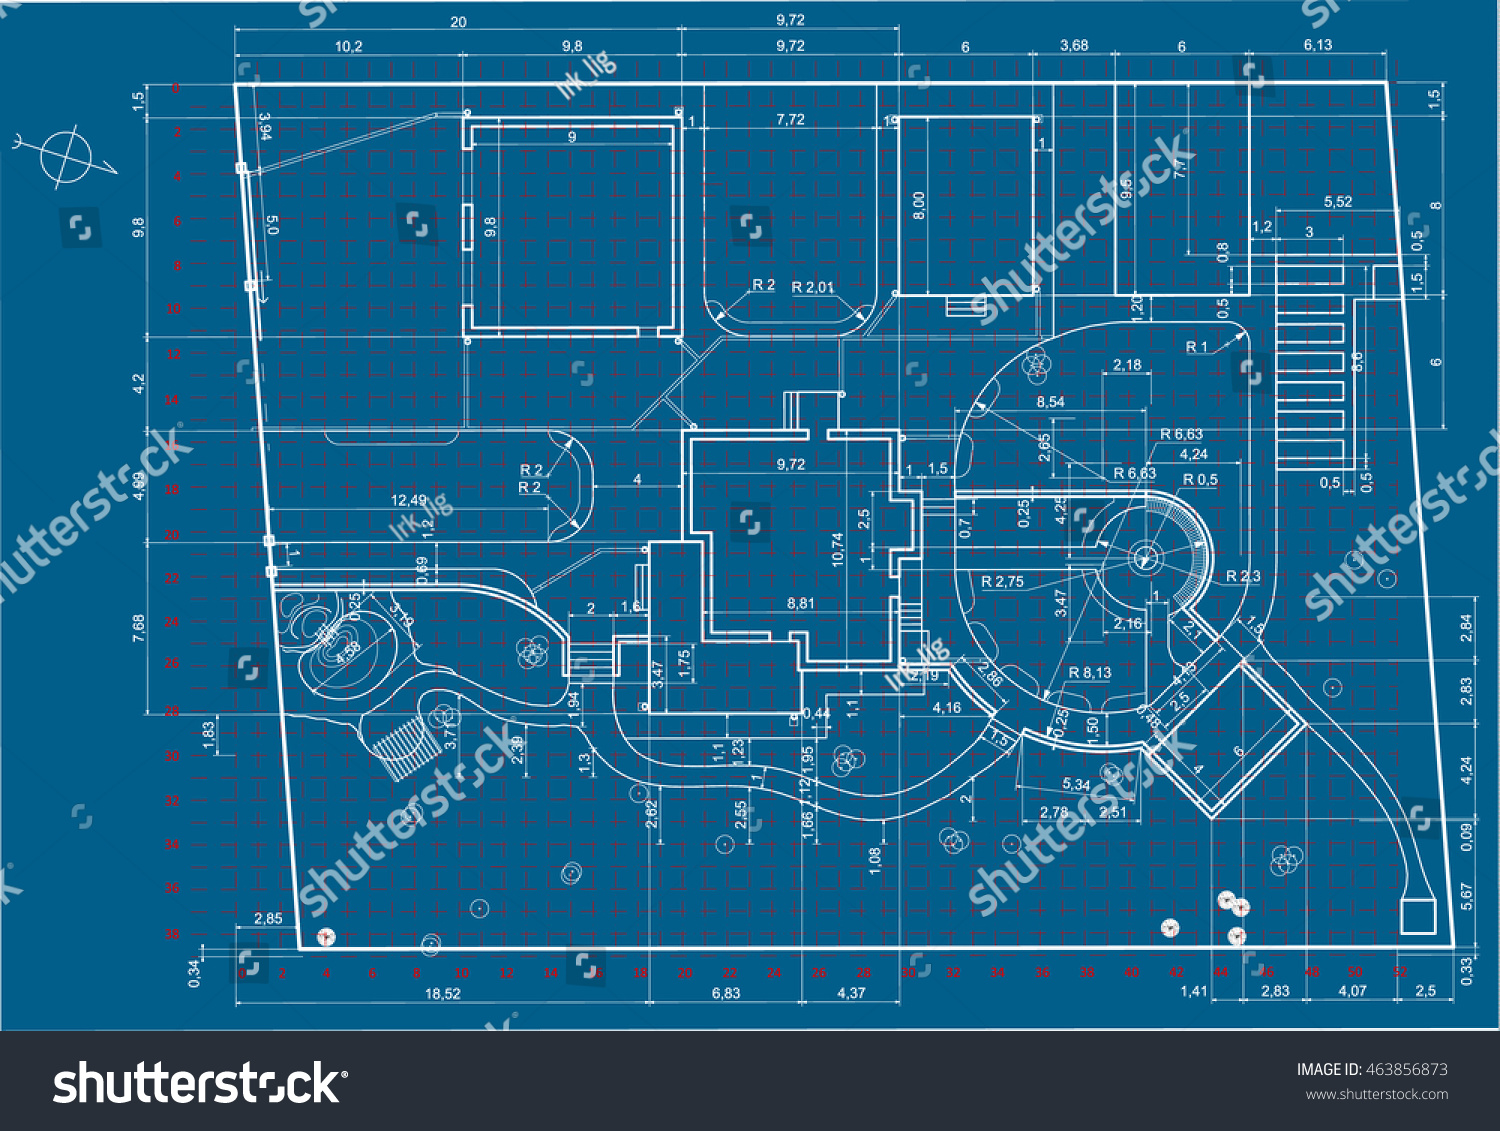 Architectural background urban blueprint landscape design section urban blueprintndscape design section malvernweather Images